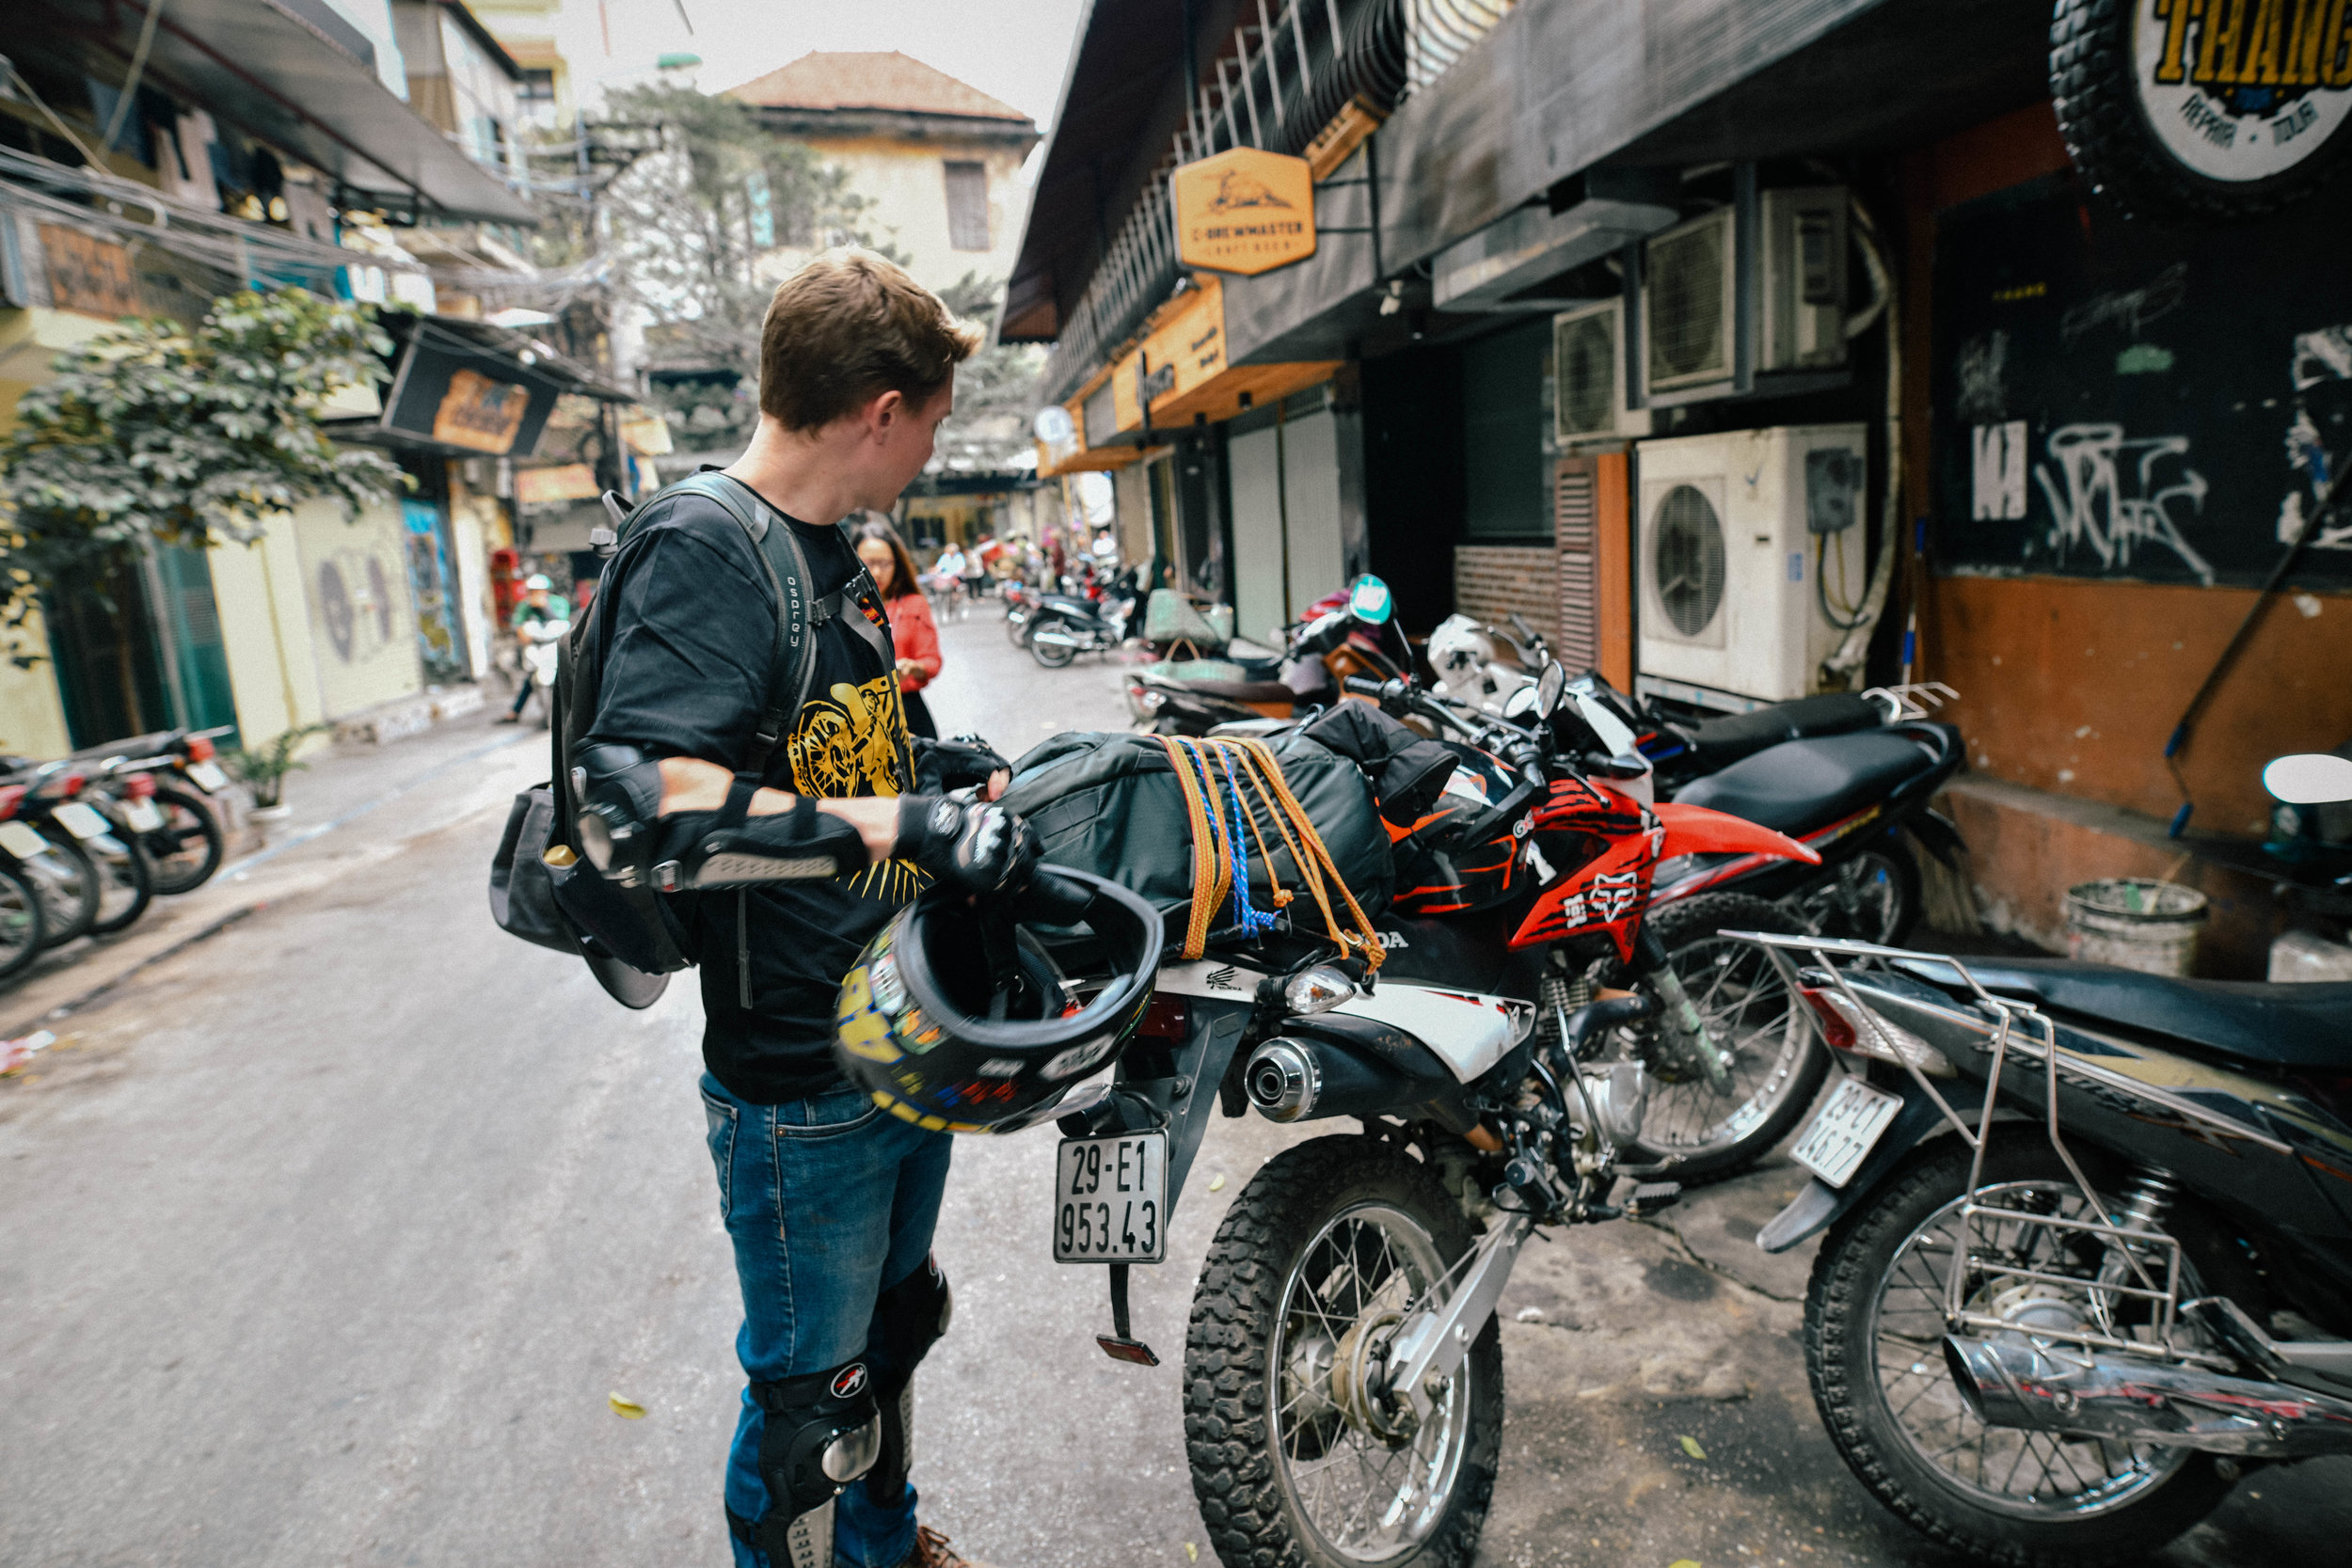 getting motobikes ready in the streets of hanoi